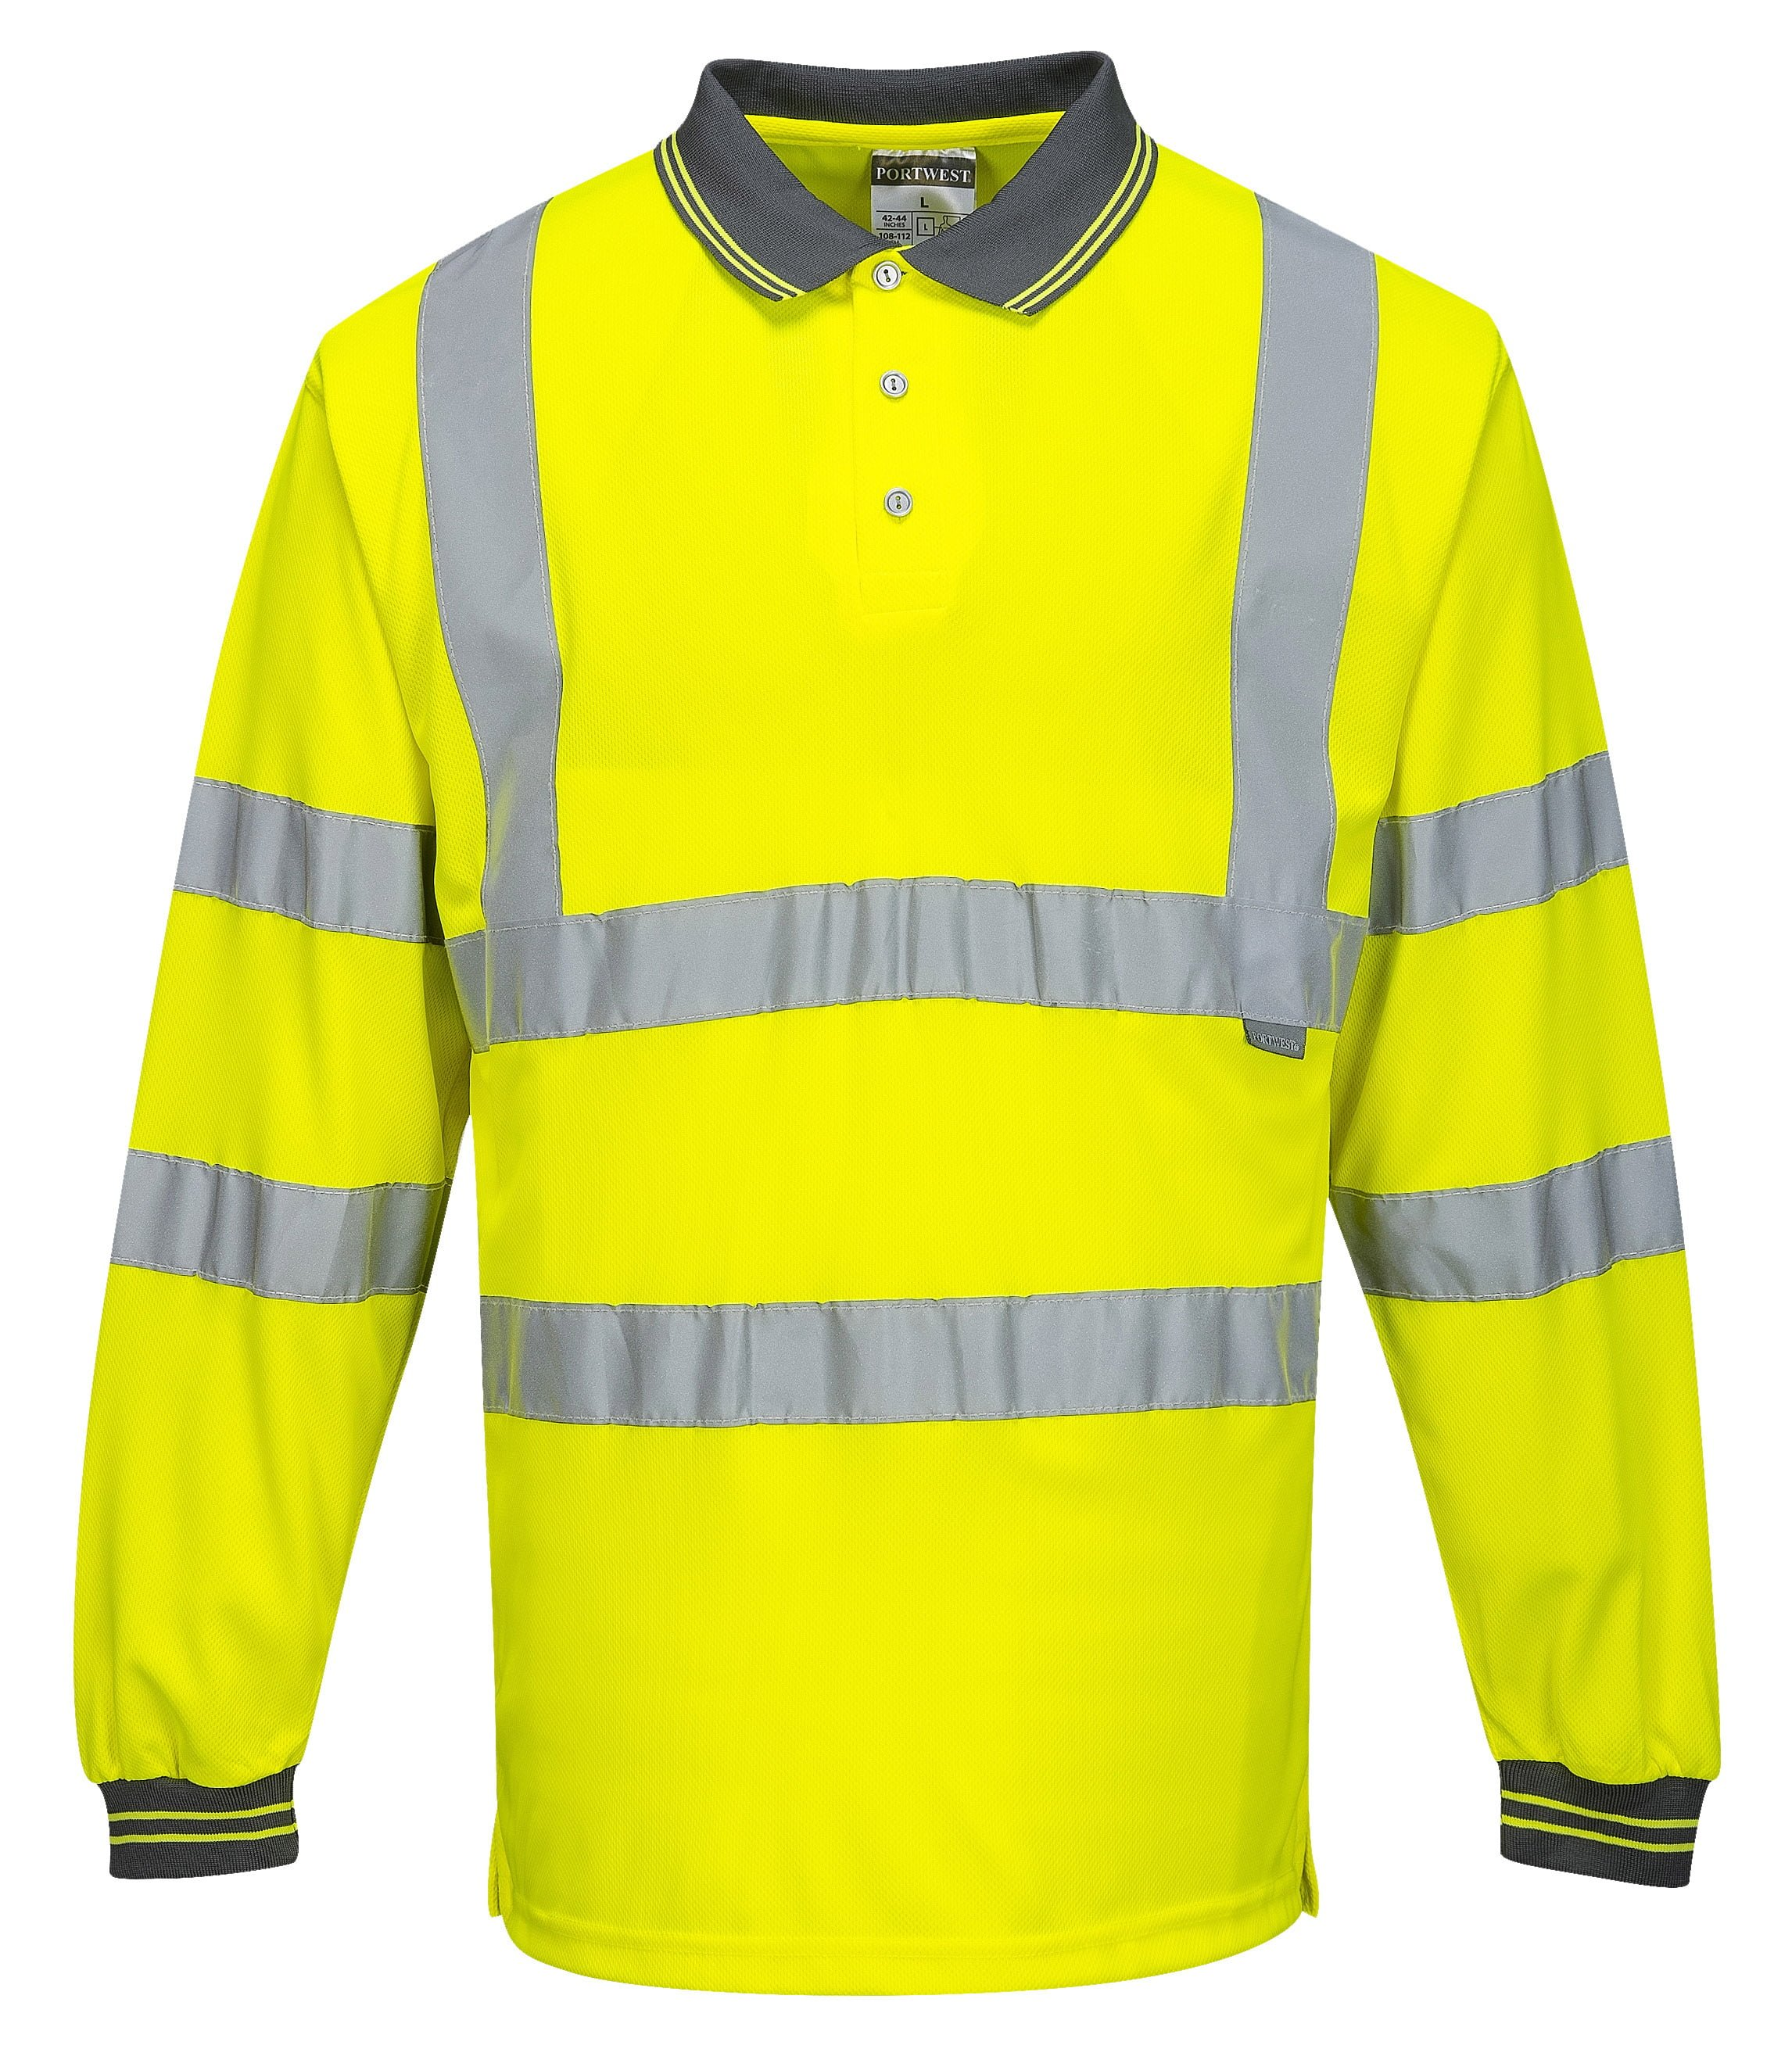 Portwest S277 High Visibility Long Sleeve Safety Polo ac394d82c16b